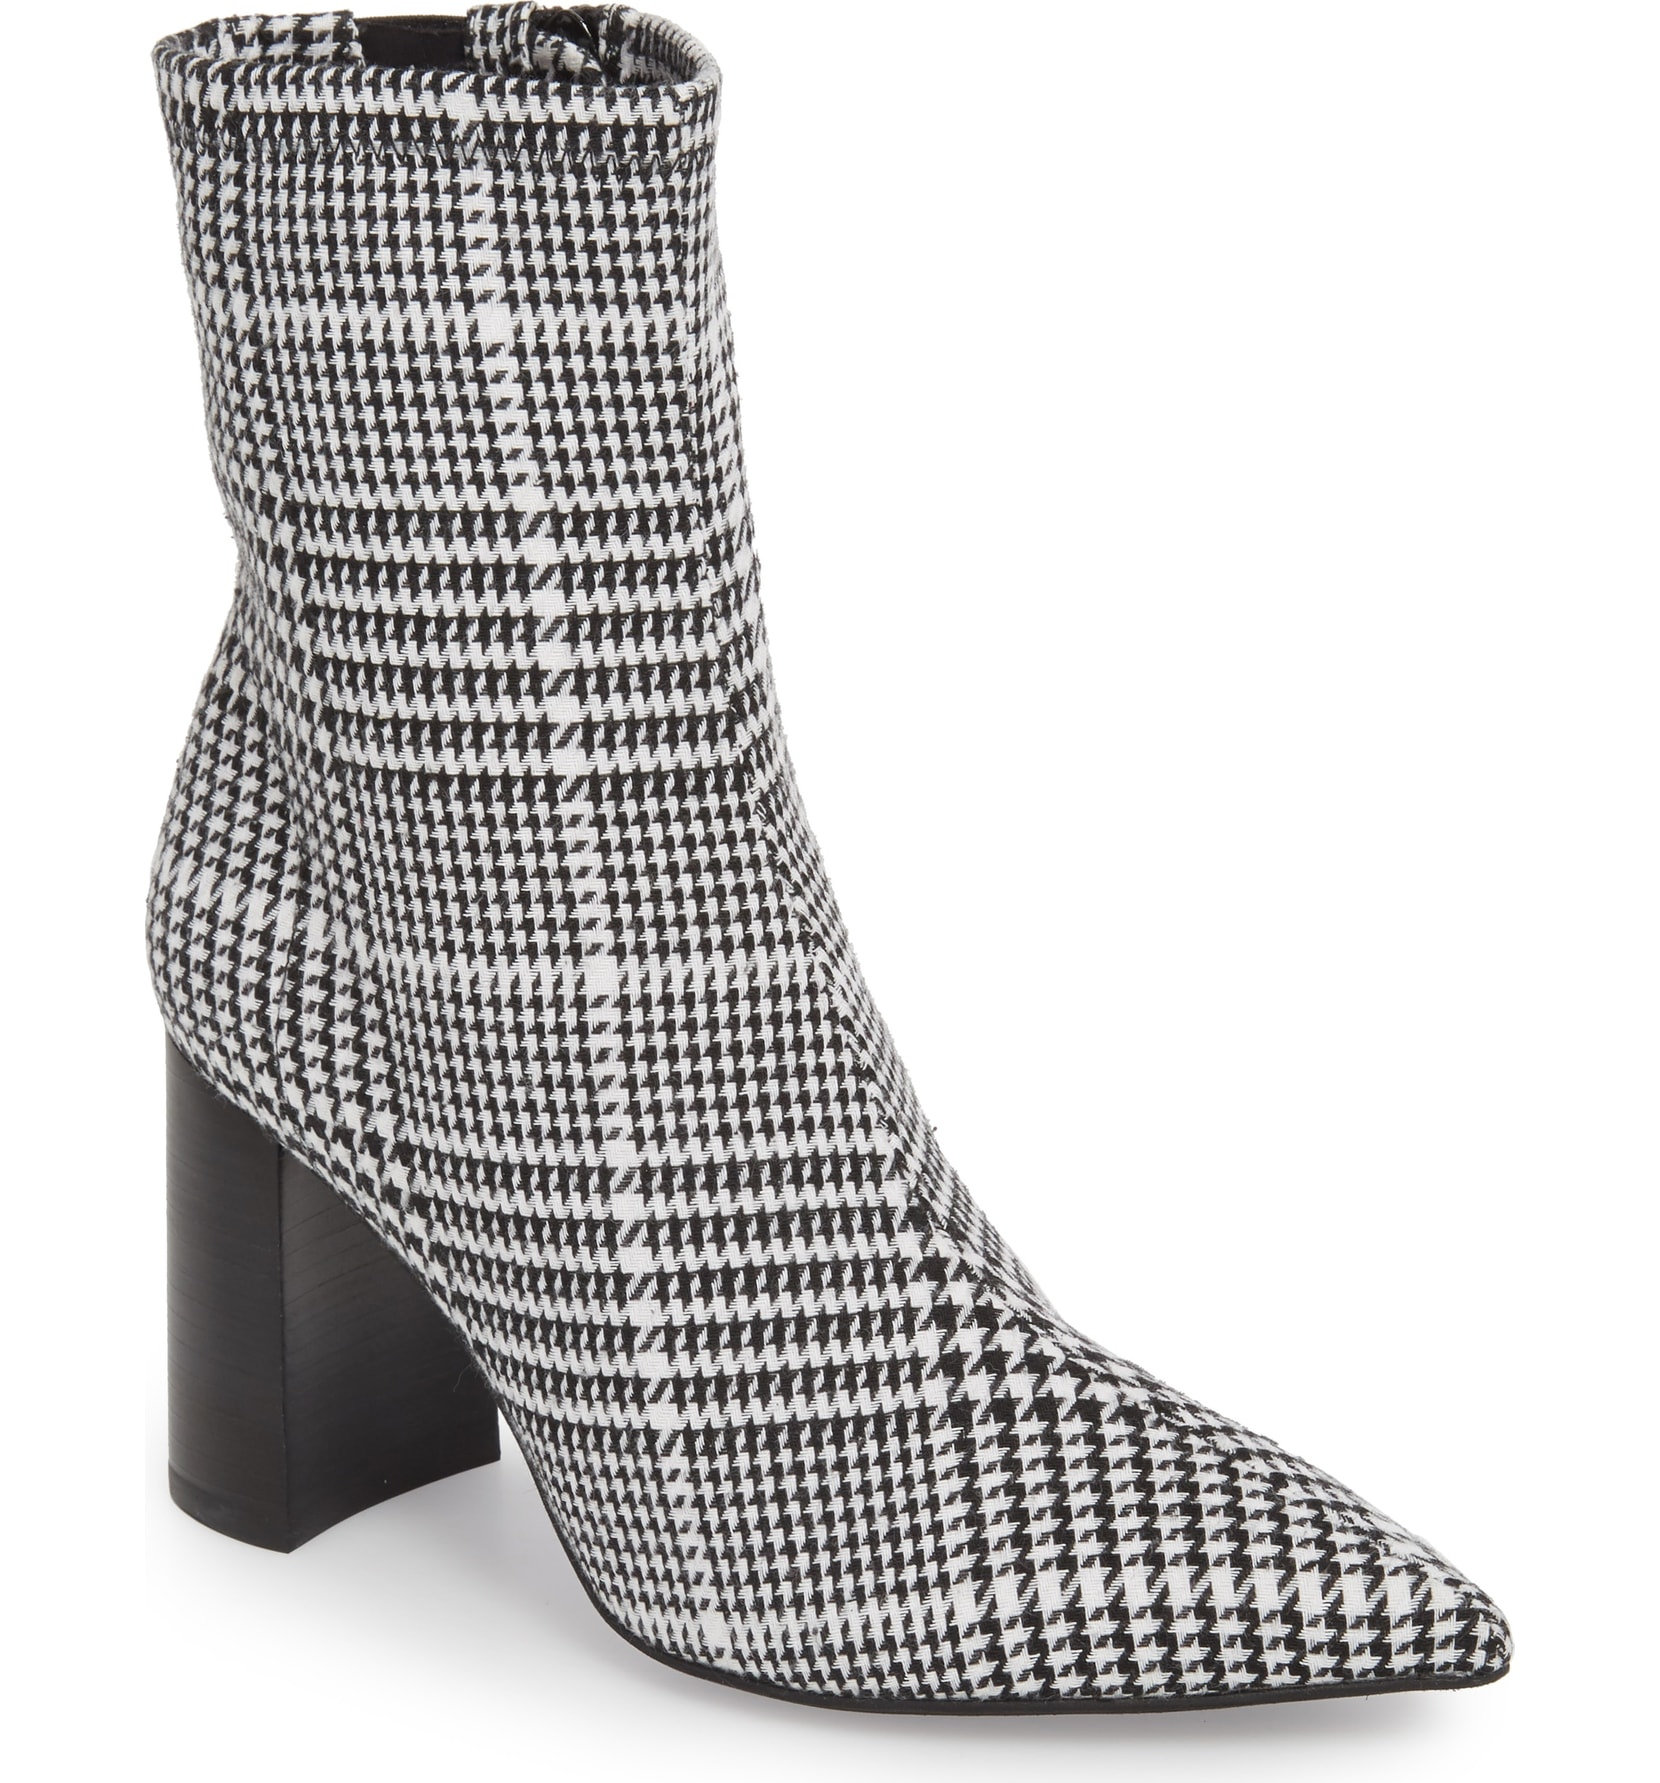 Coma Stretch Bootie. Sale:$82.90 / After Sale:$124.95. (Image: Nordstrom){ }